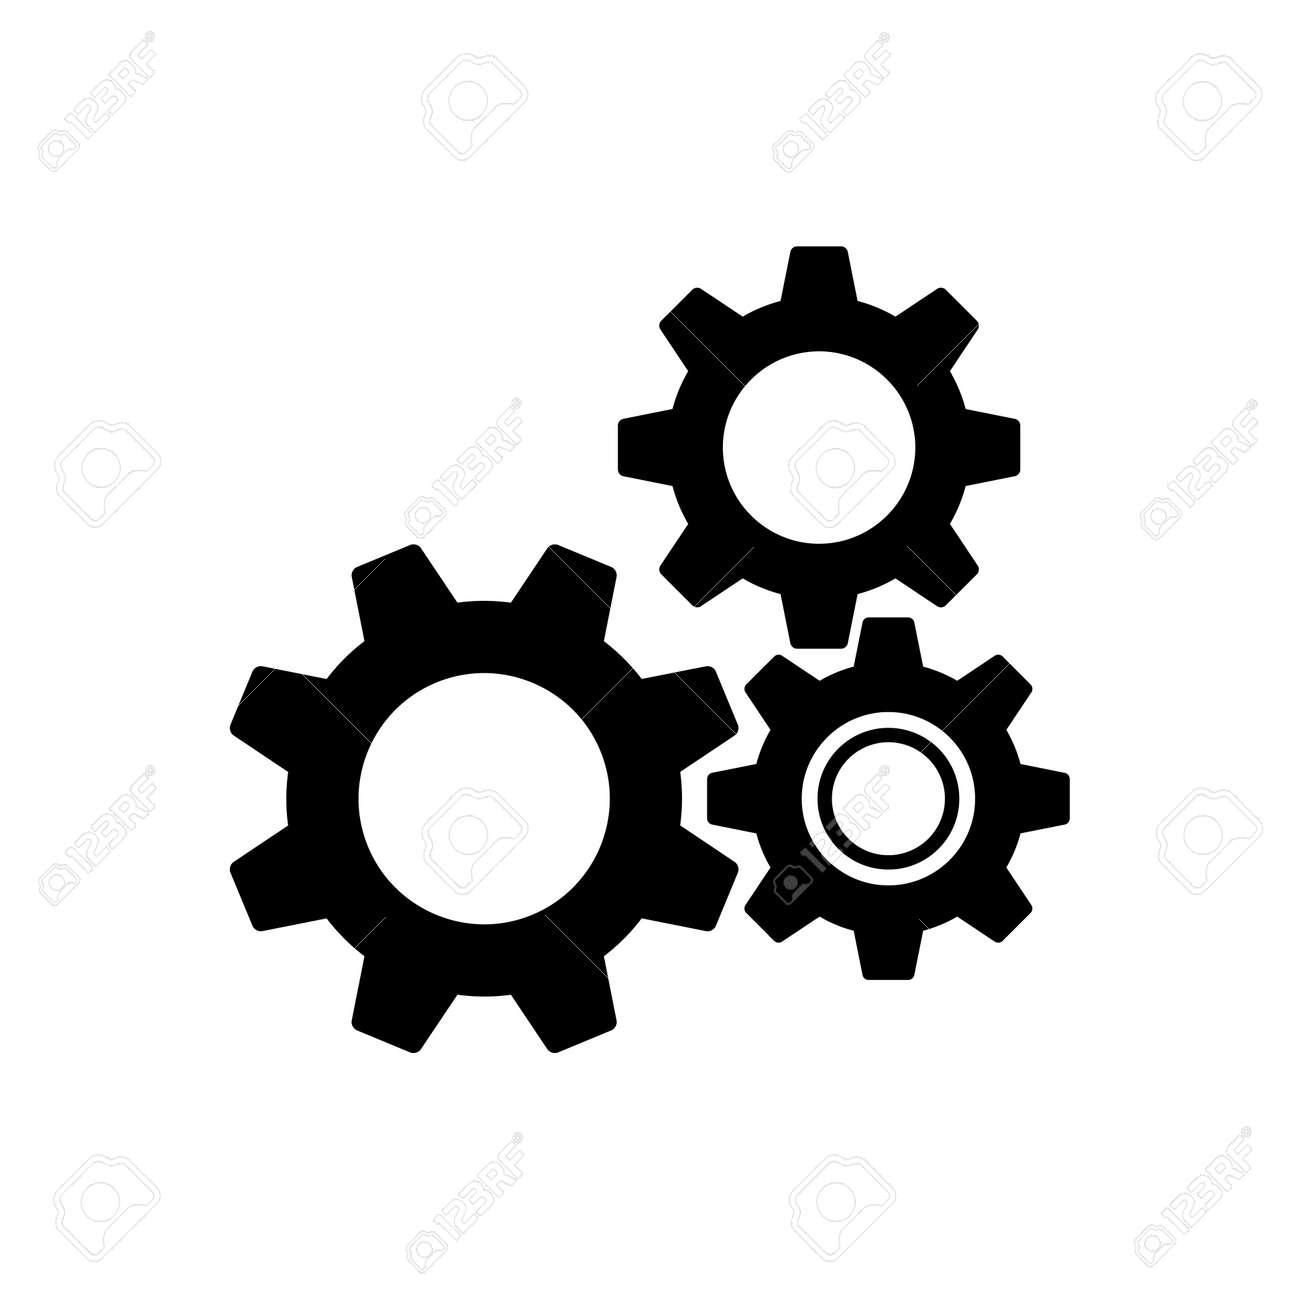 Gear wheels pictogram, icon isolated on a white background. EPS10 vector file - 153280778